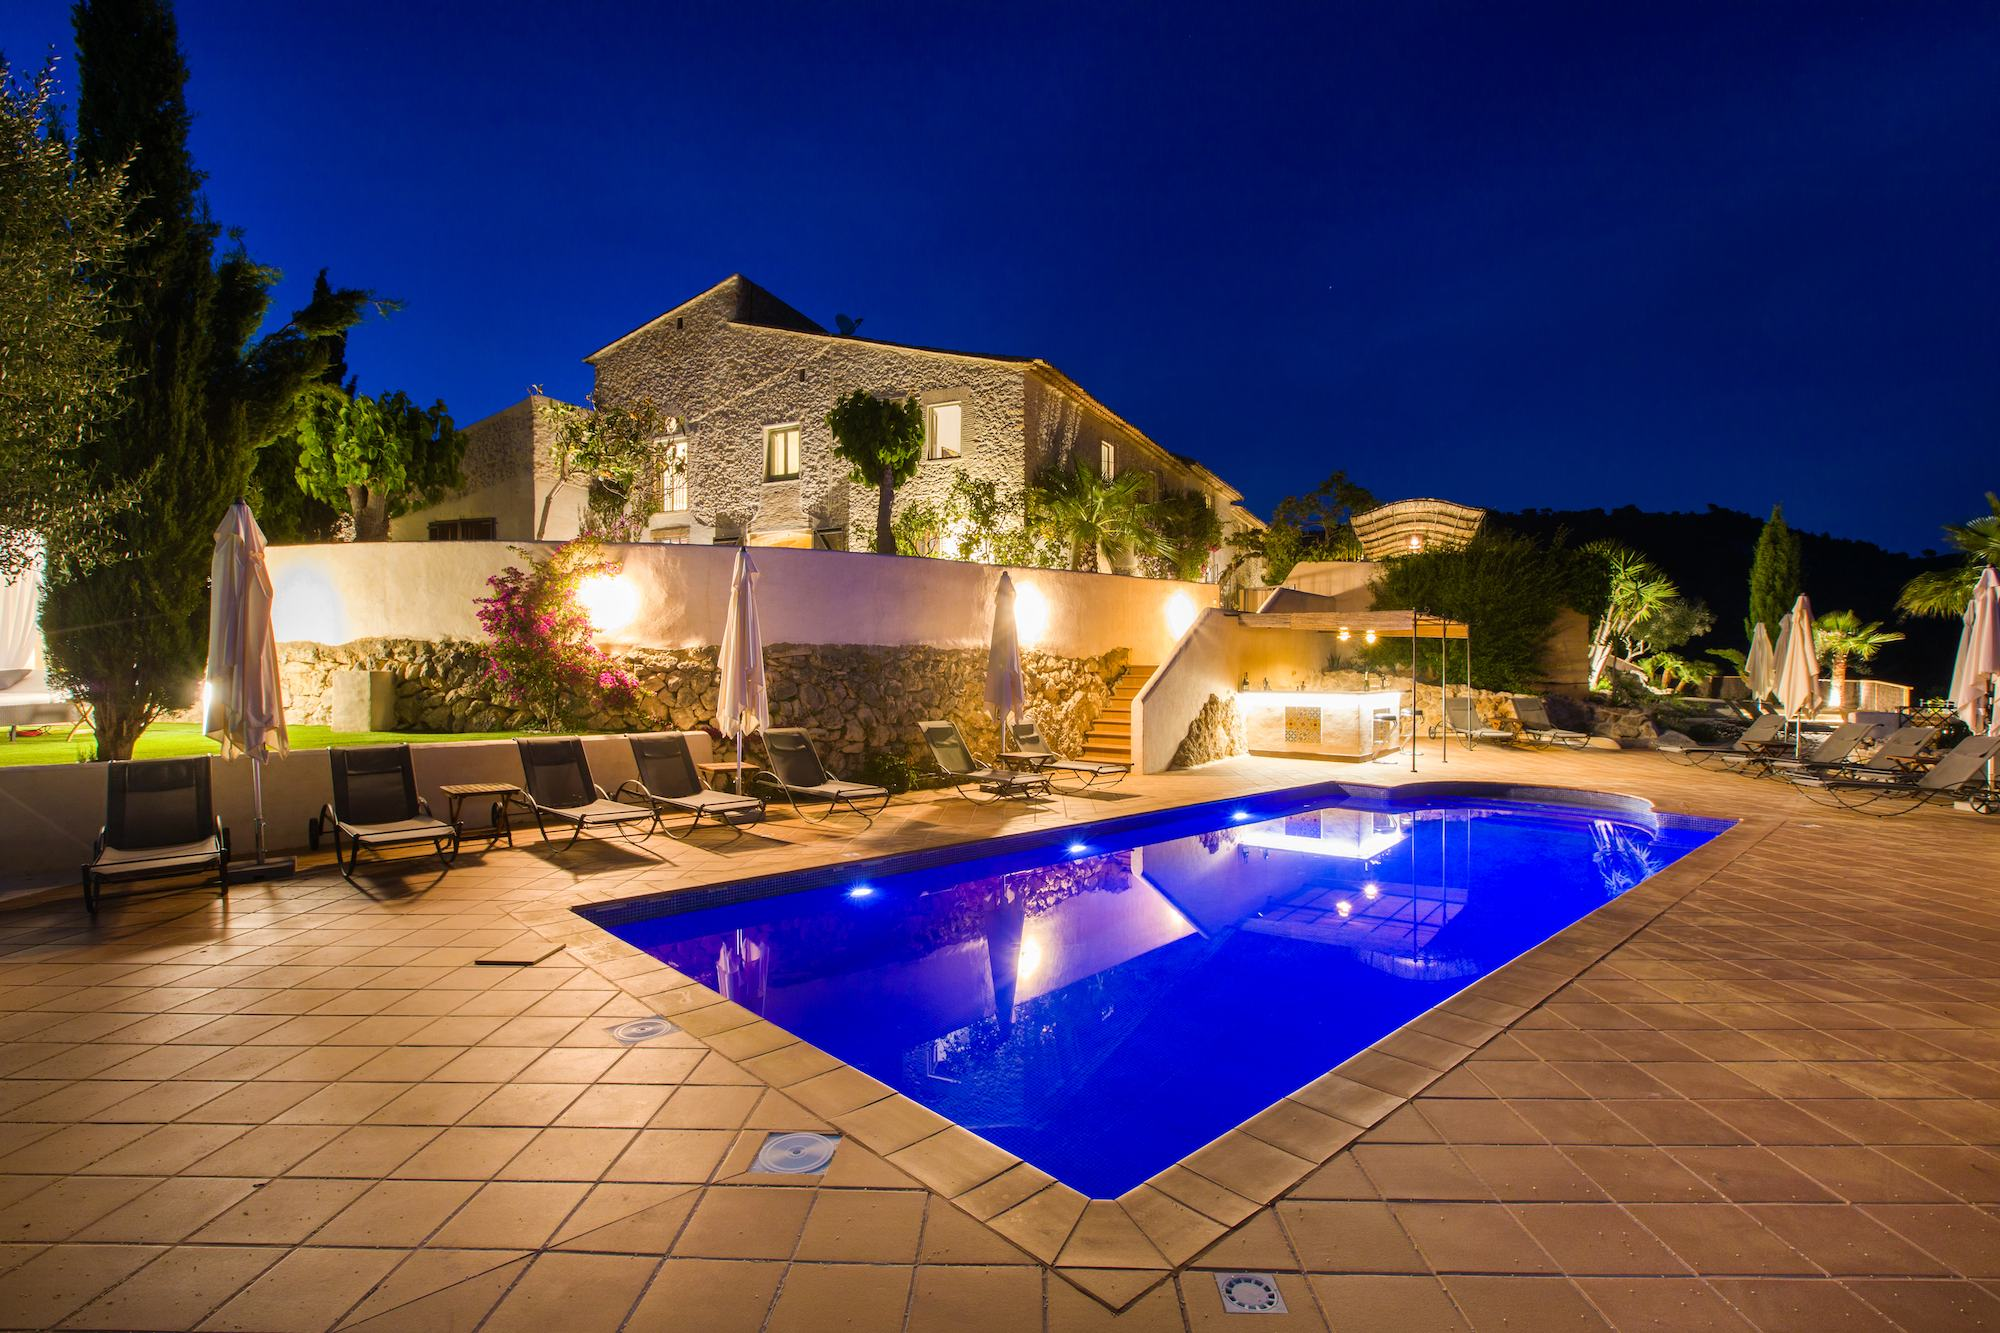 Large Barcelona Villa rent at night